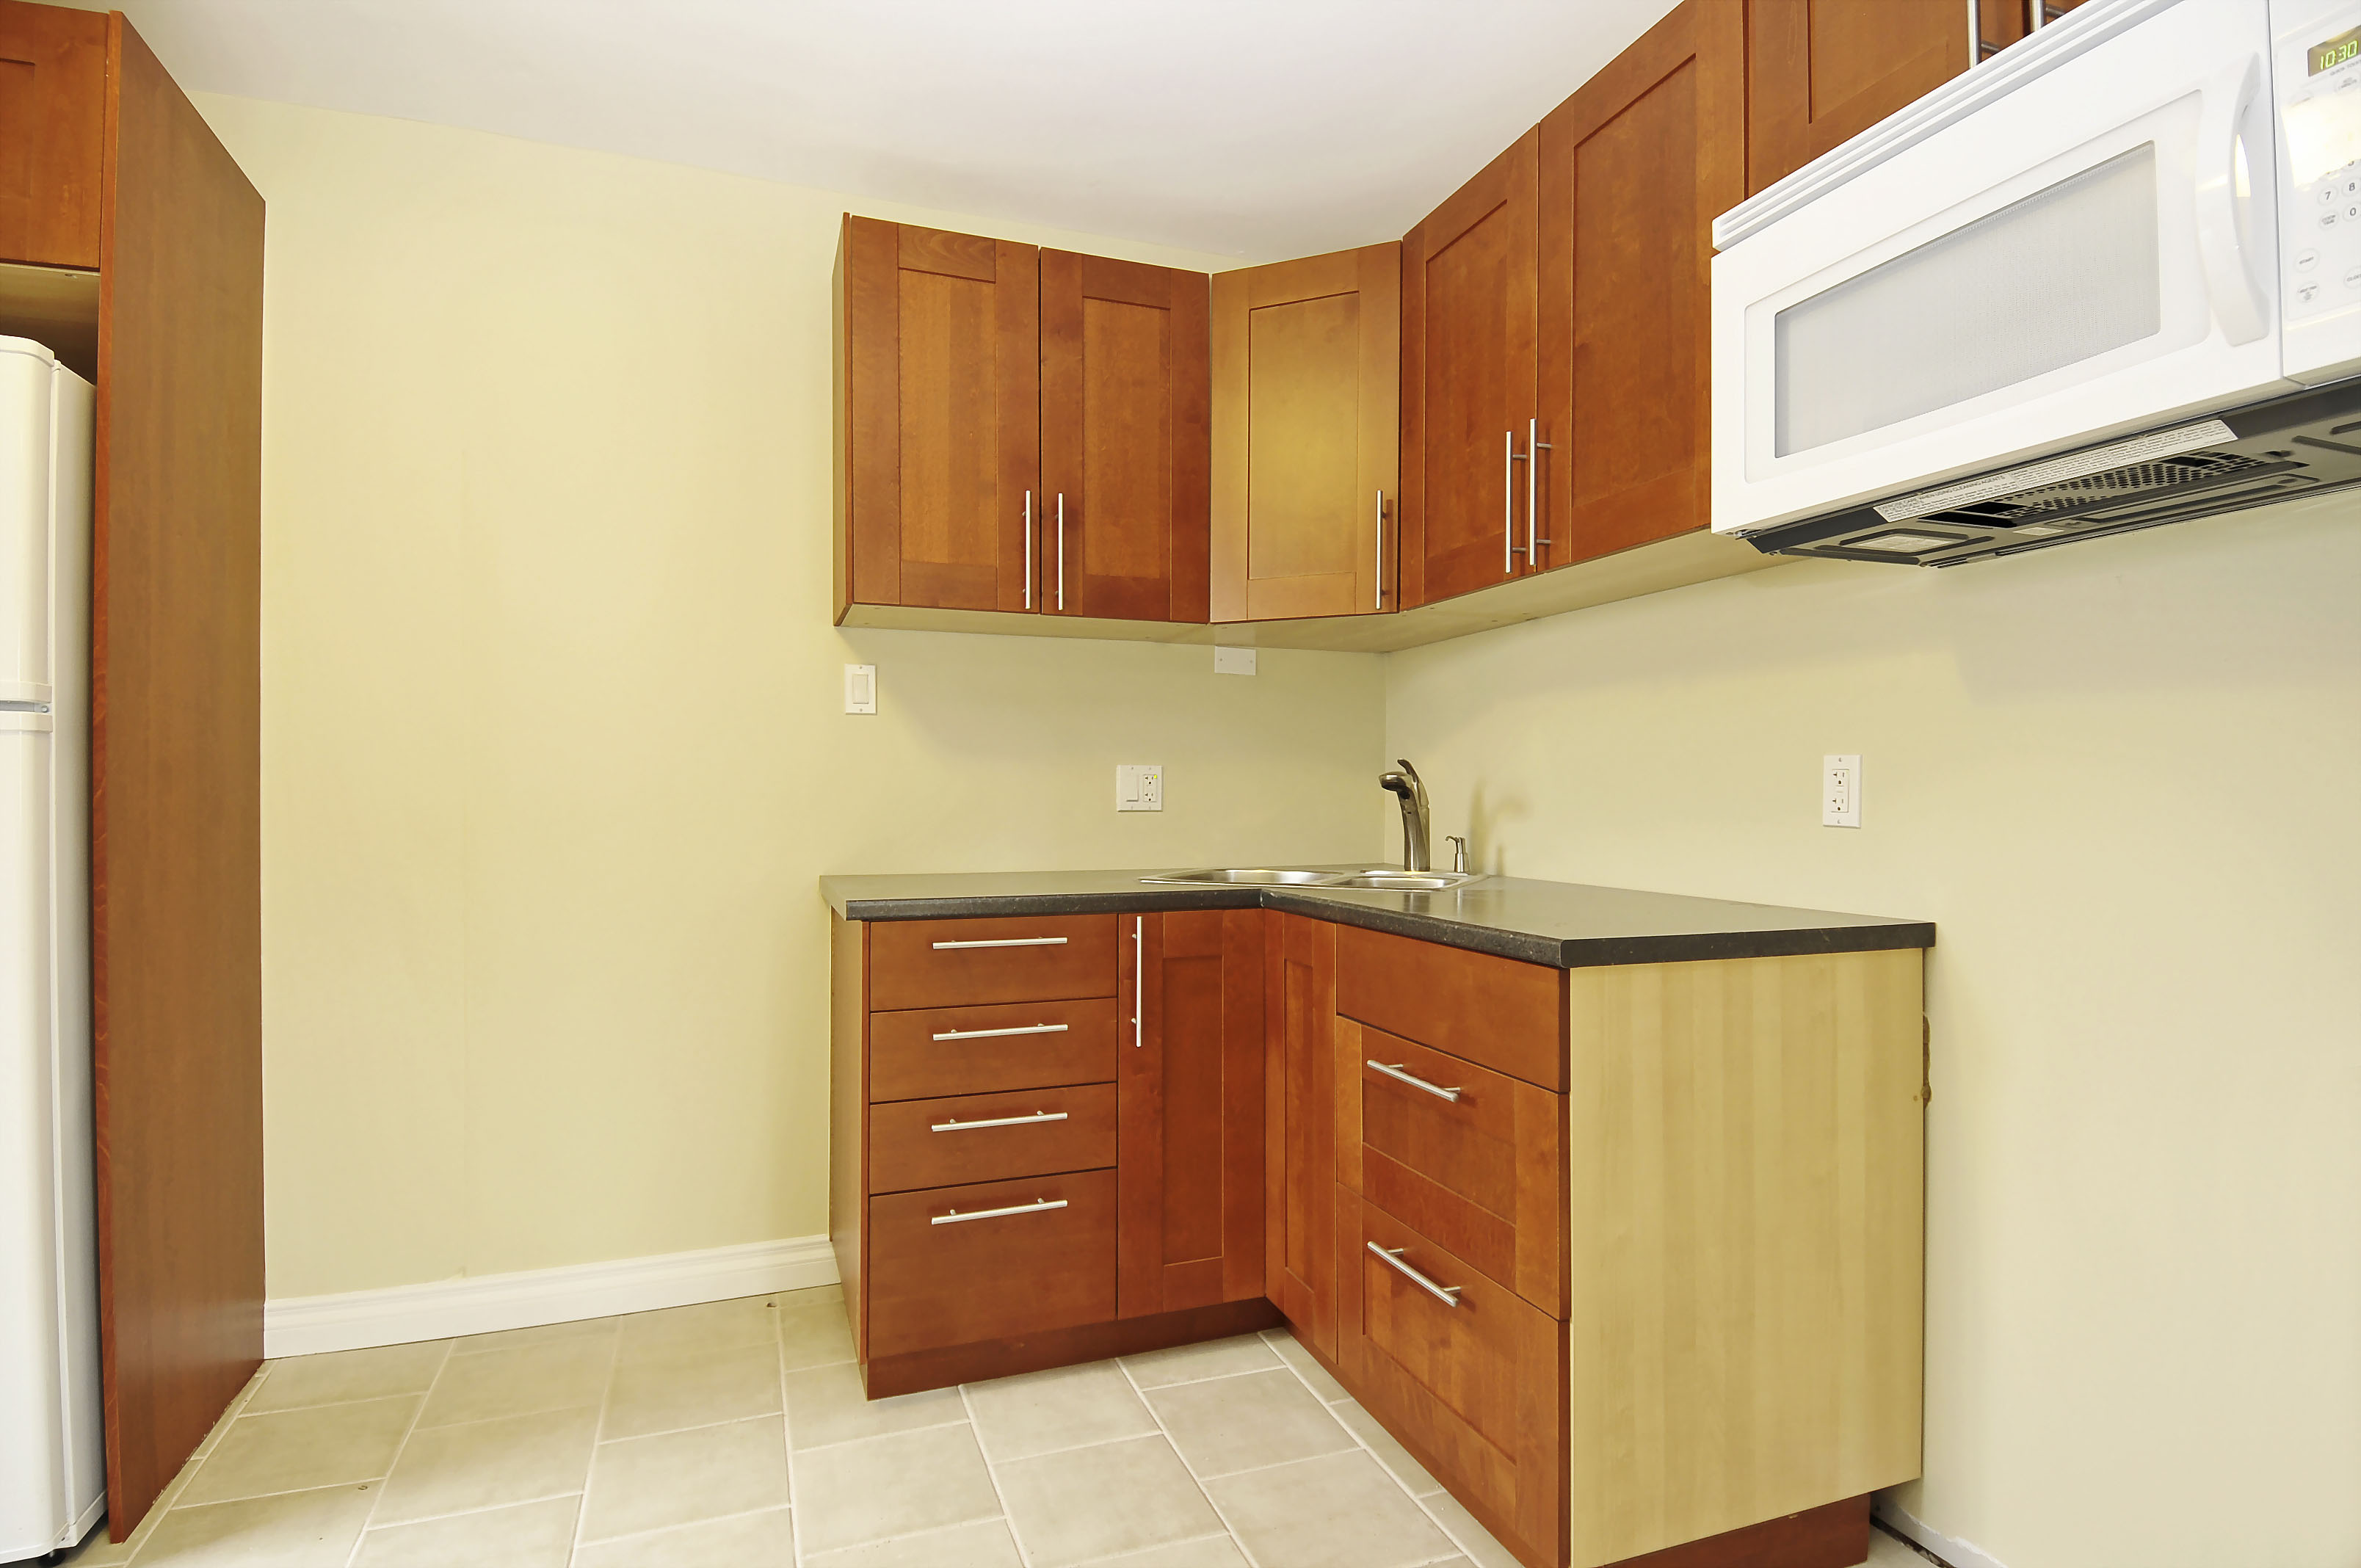 2-1127 Richard Avenue second floor kitchen counter